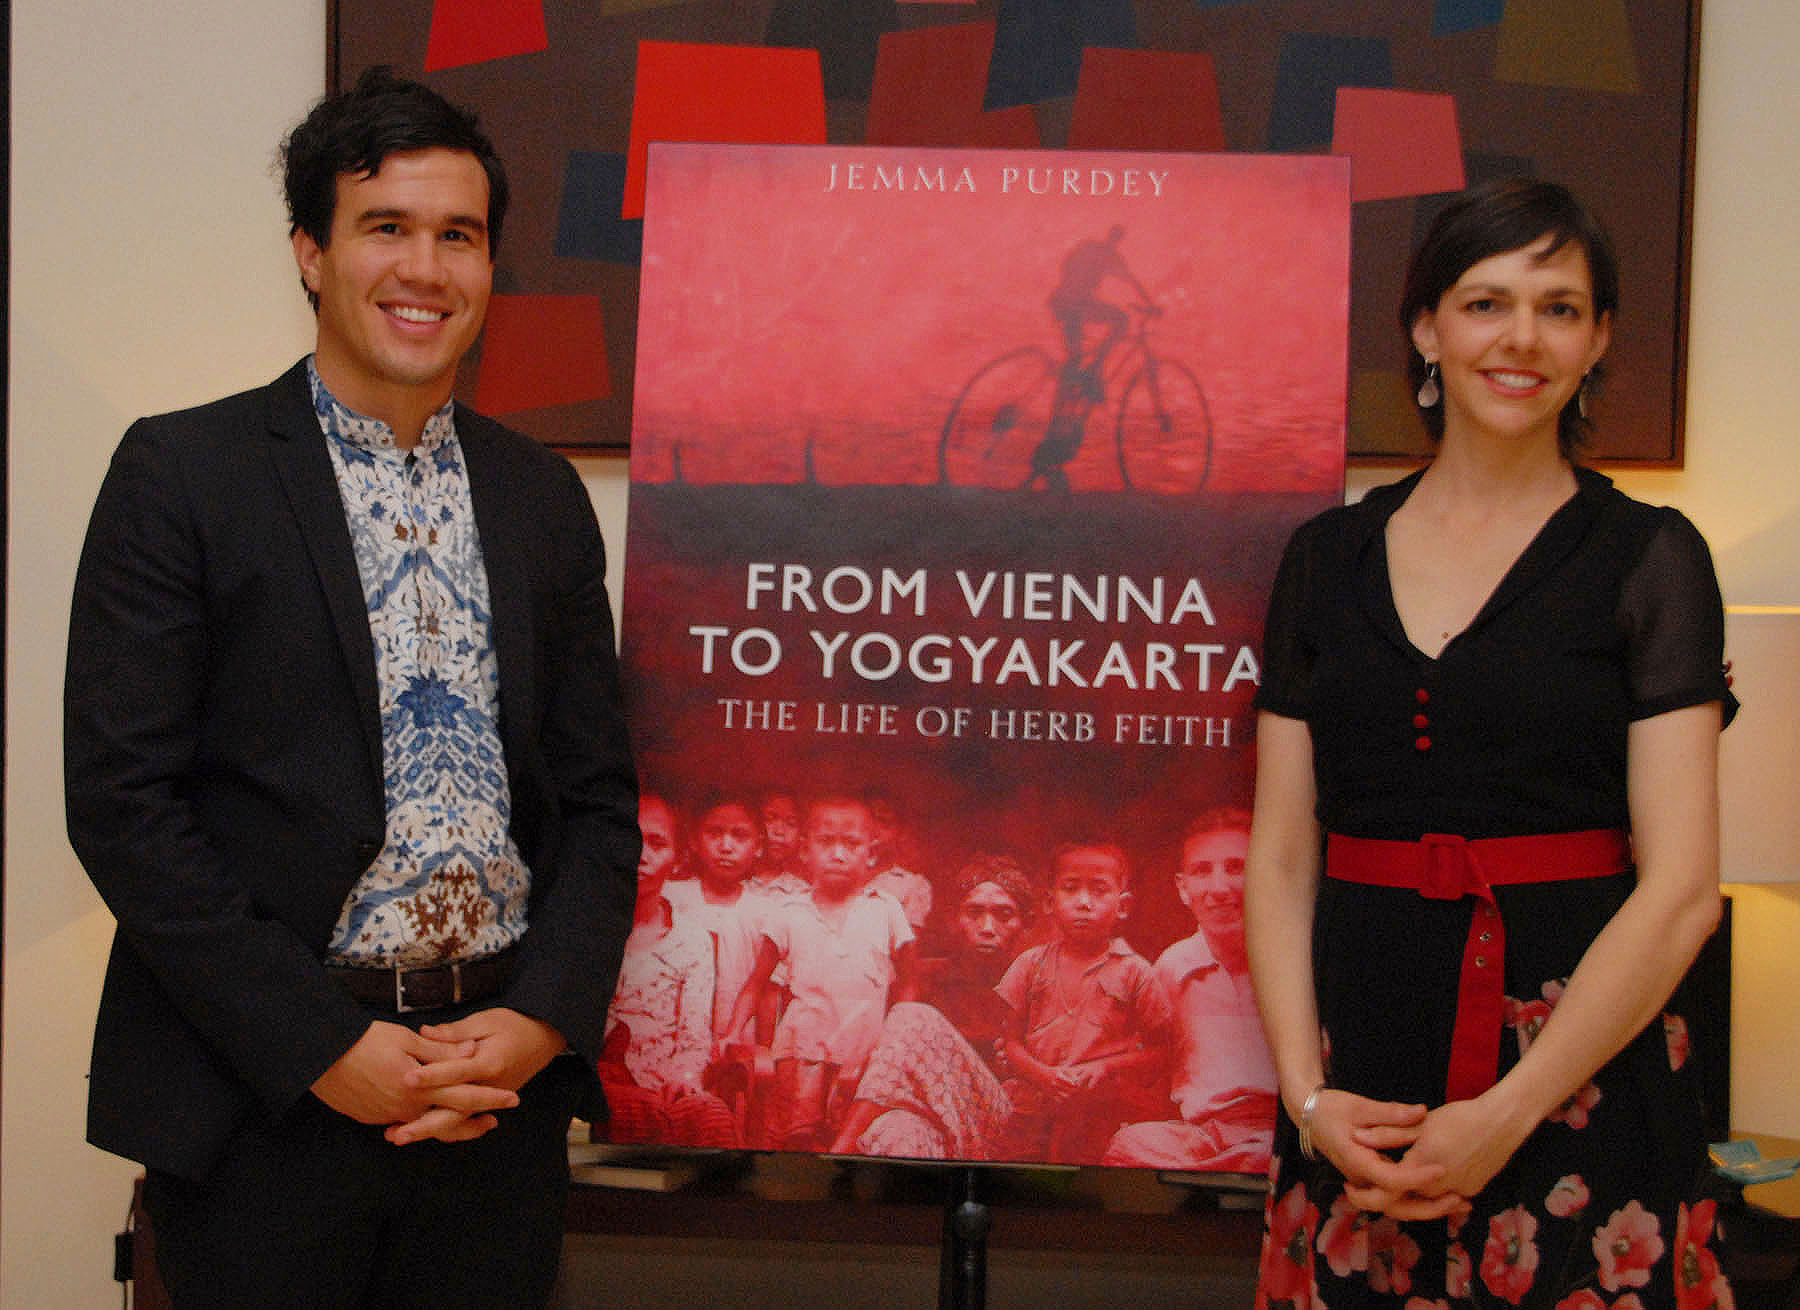 Jemma Purdey with Nik Feith Tan (Herb's grandson) at the launch of the biography in Jakarta, October 2011